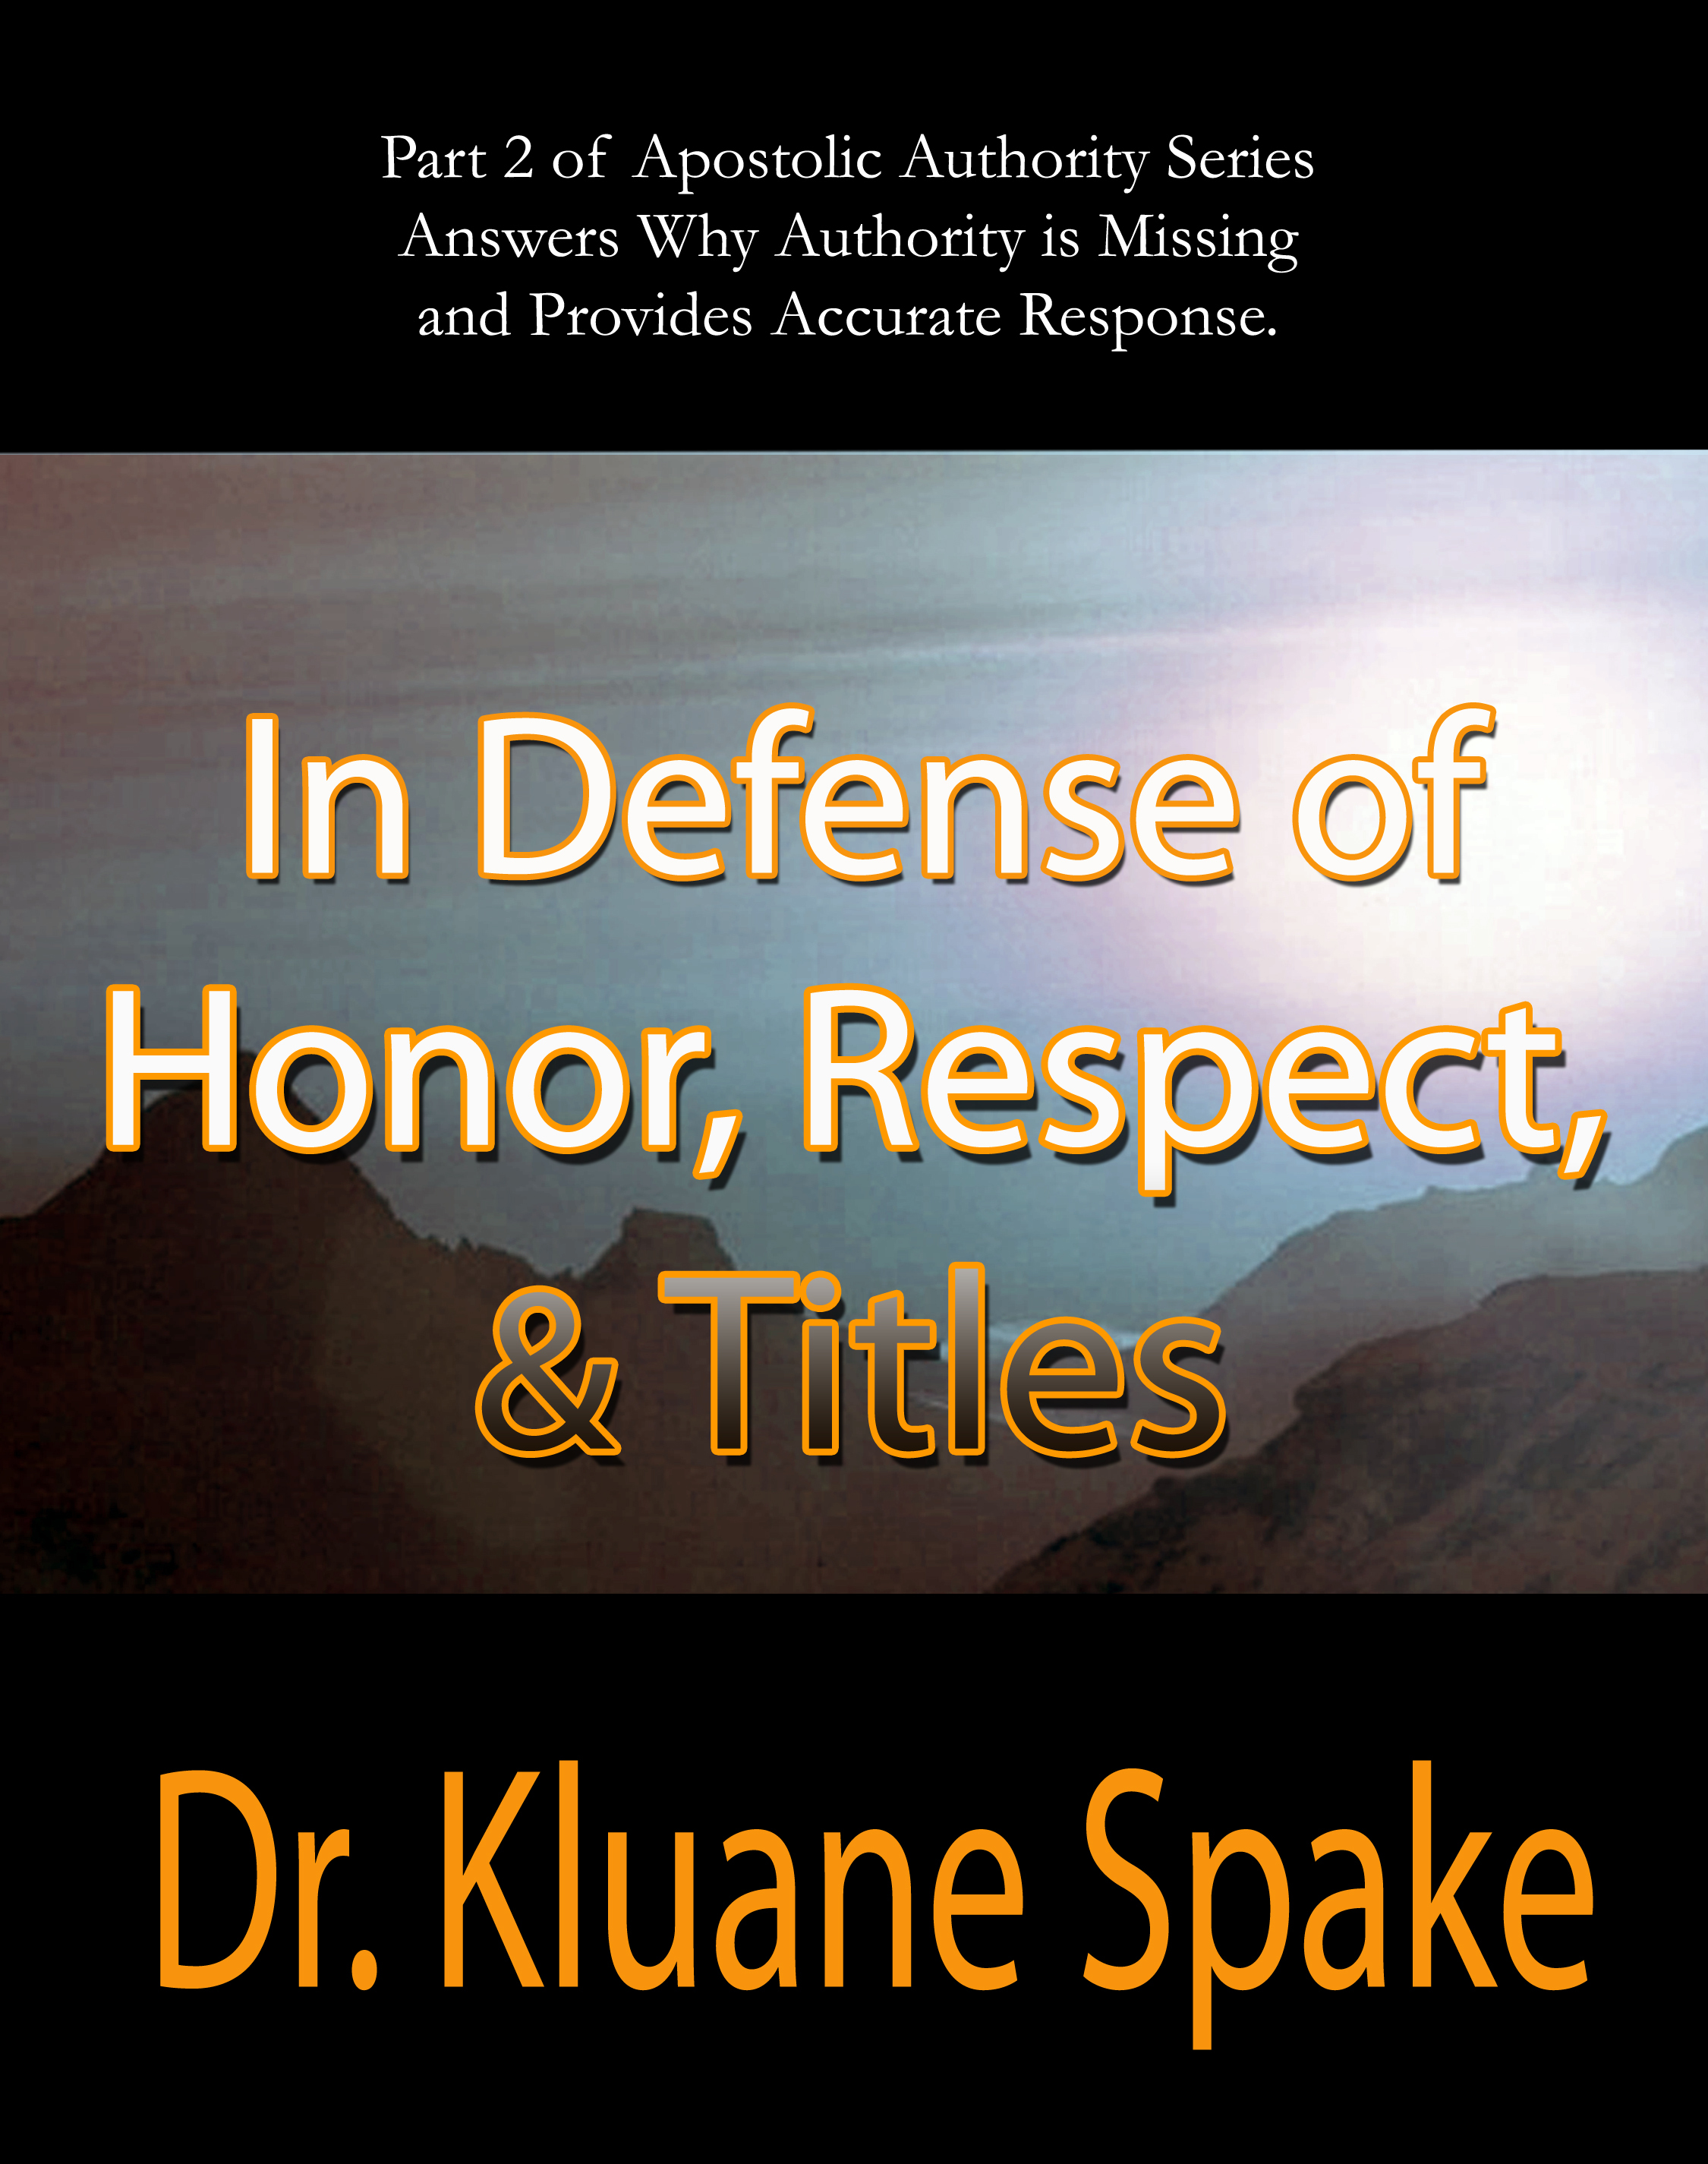 In Defense of Respect, Honor, & Titles 00006